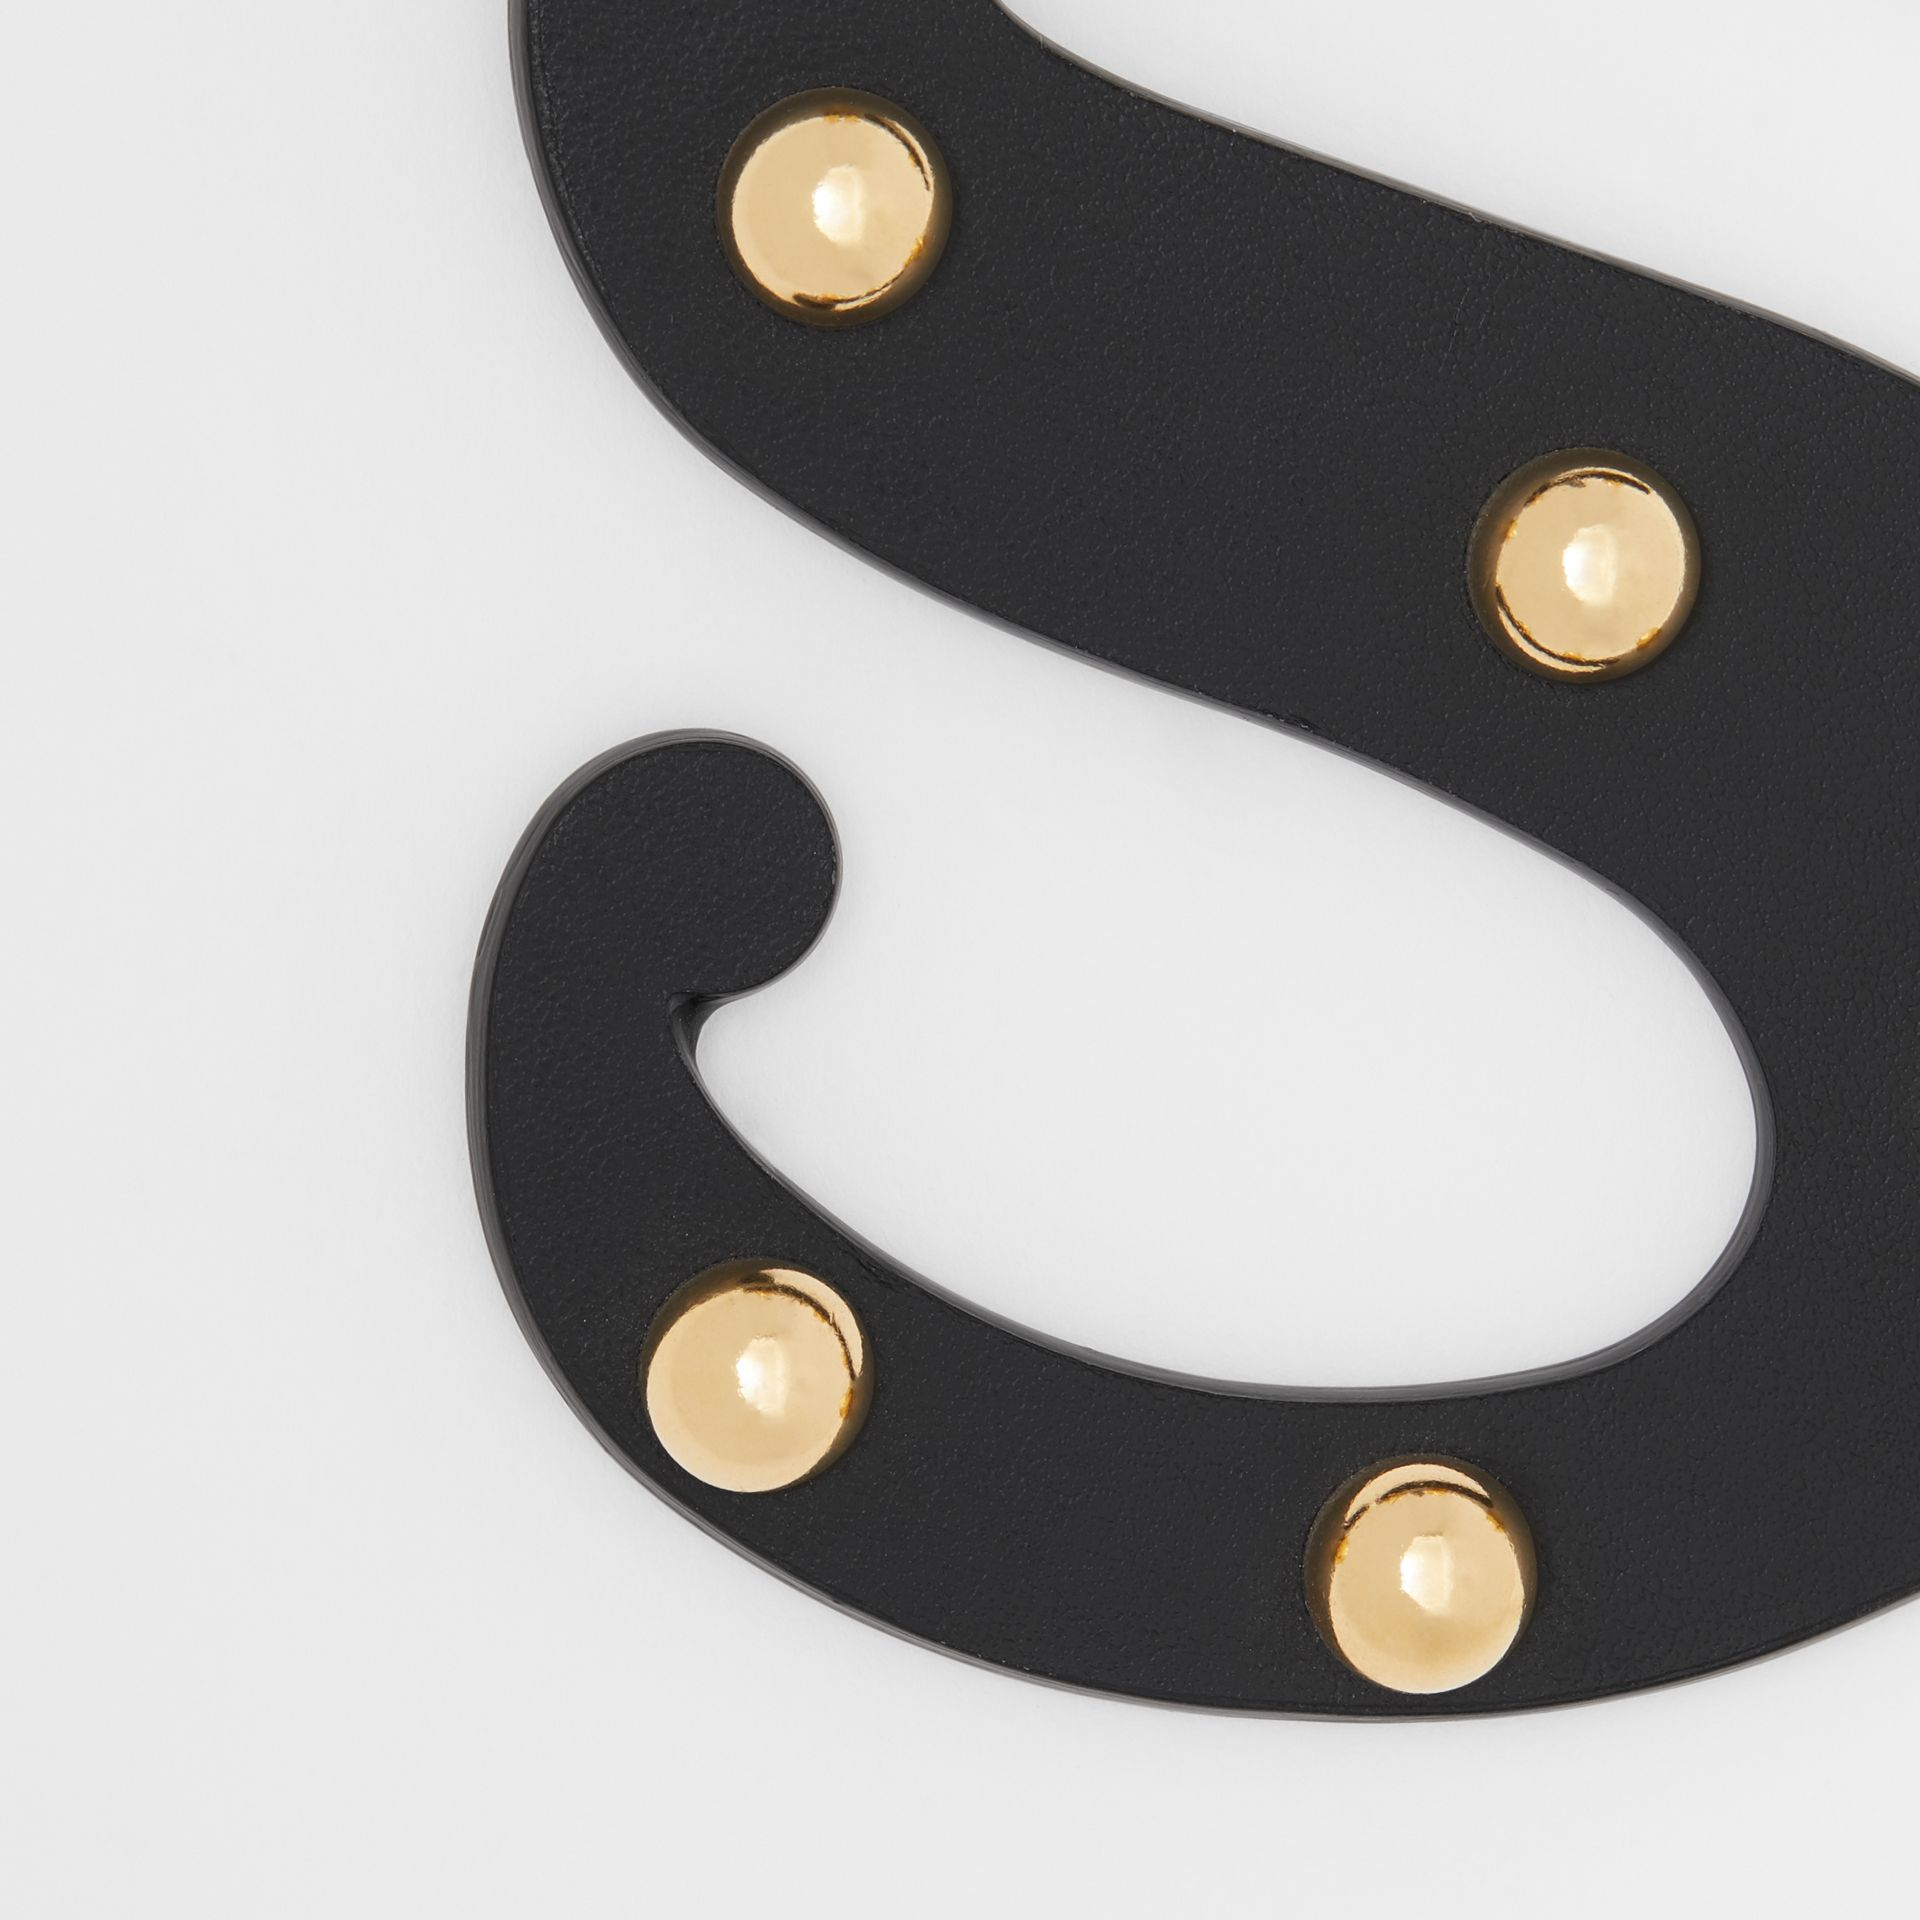 'S' Studded Leather Alphabet Charm in Black/light Gold - Women | Burberry - gallery image 1